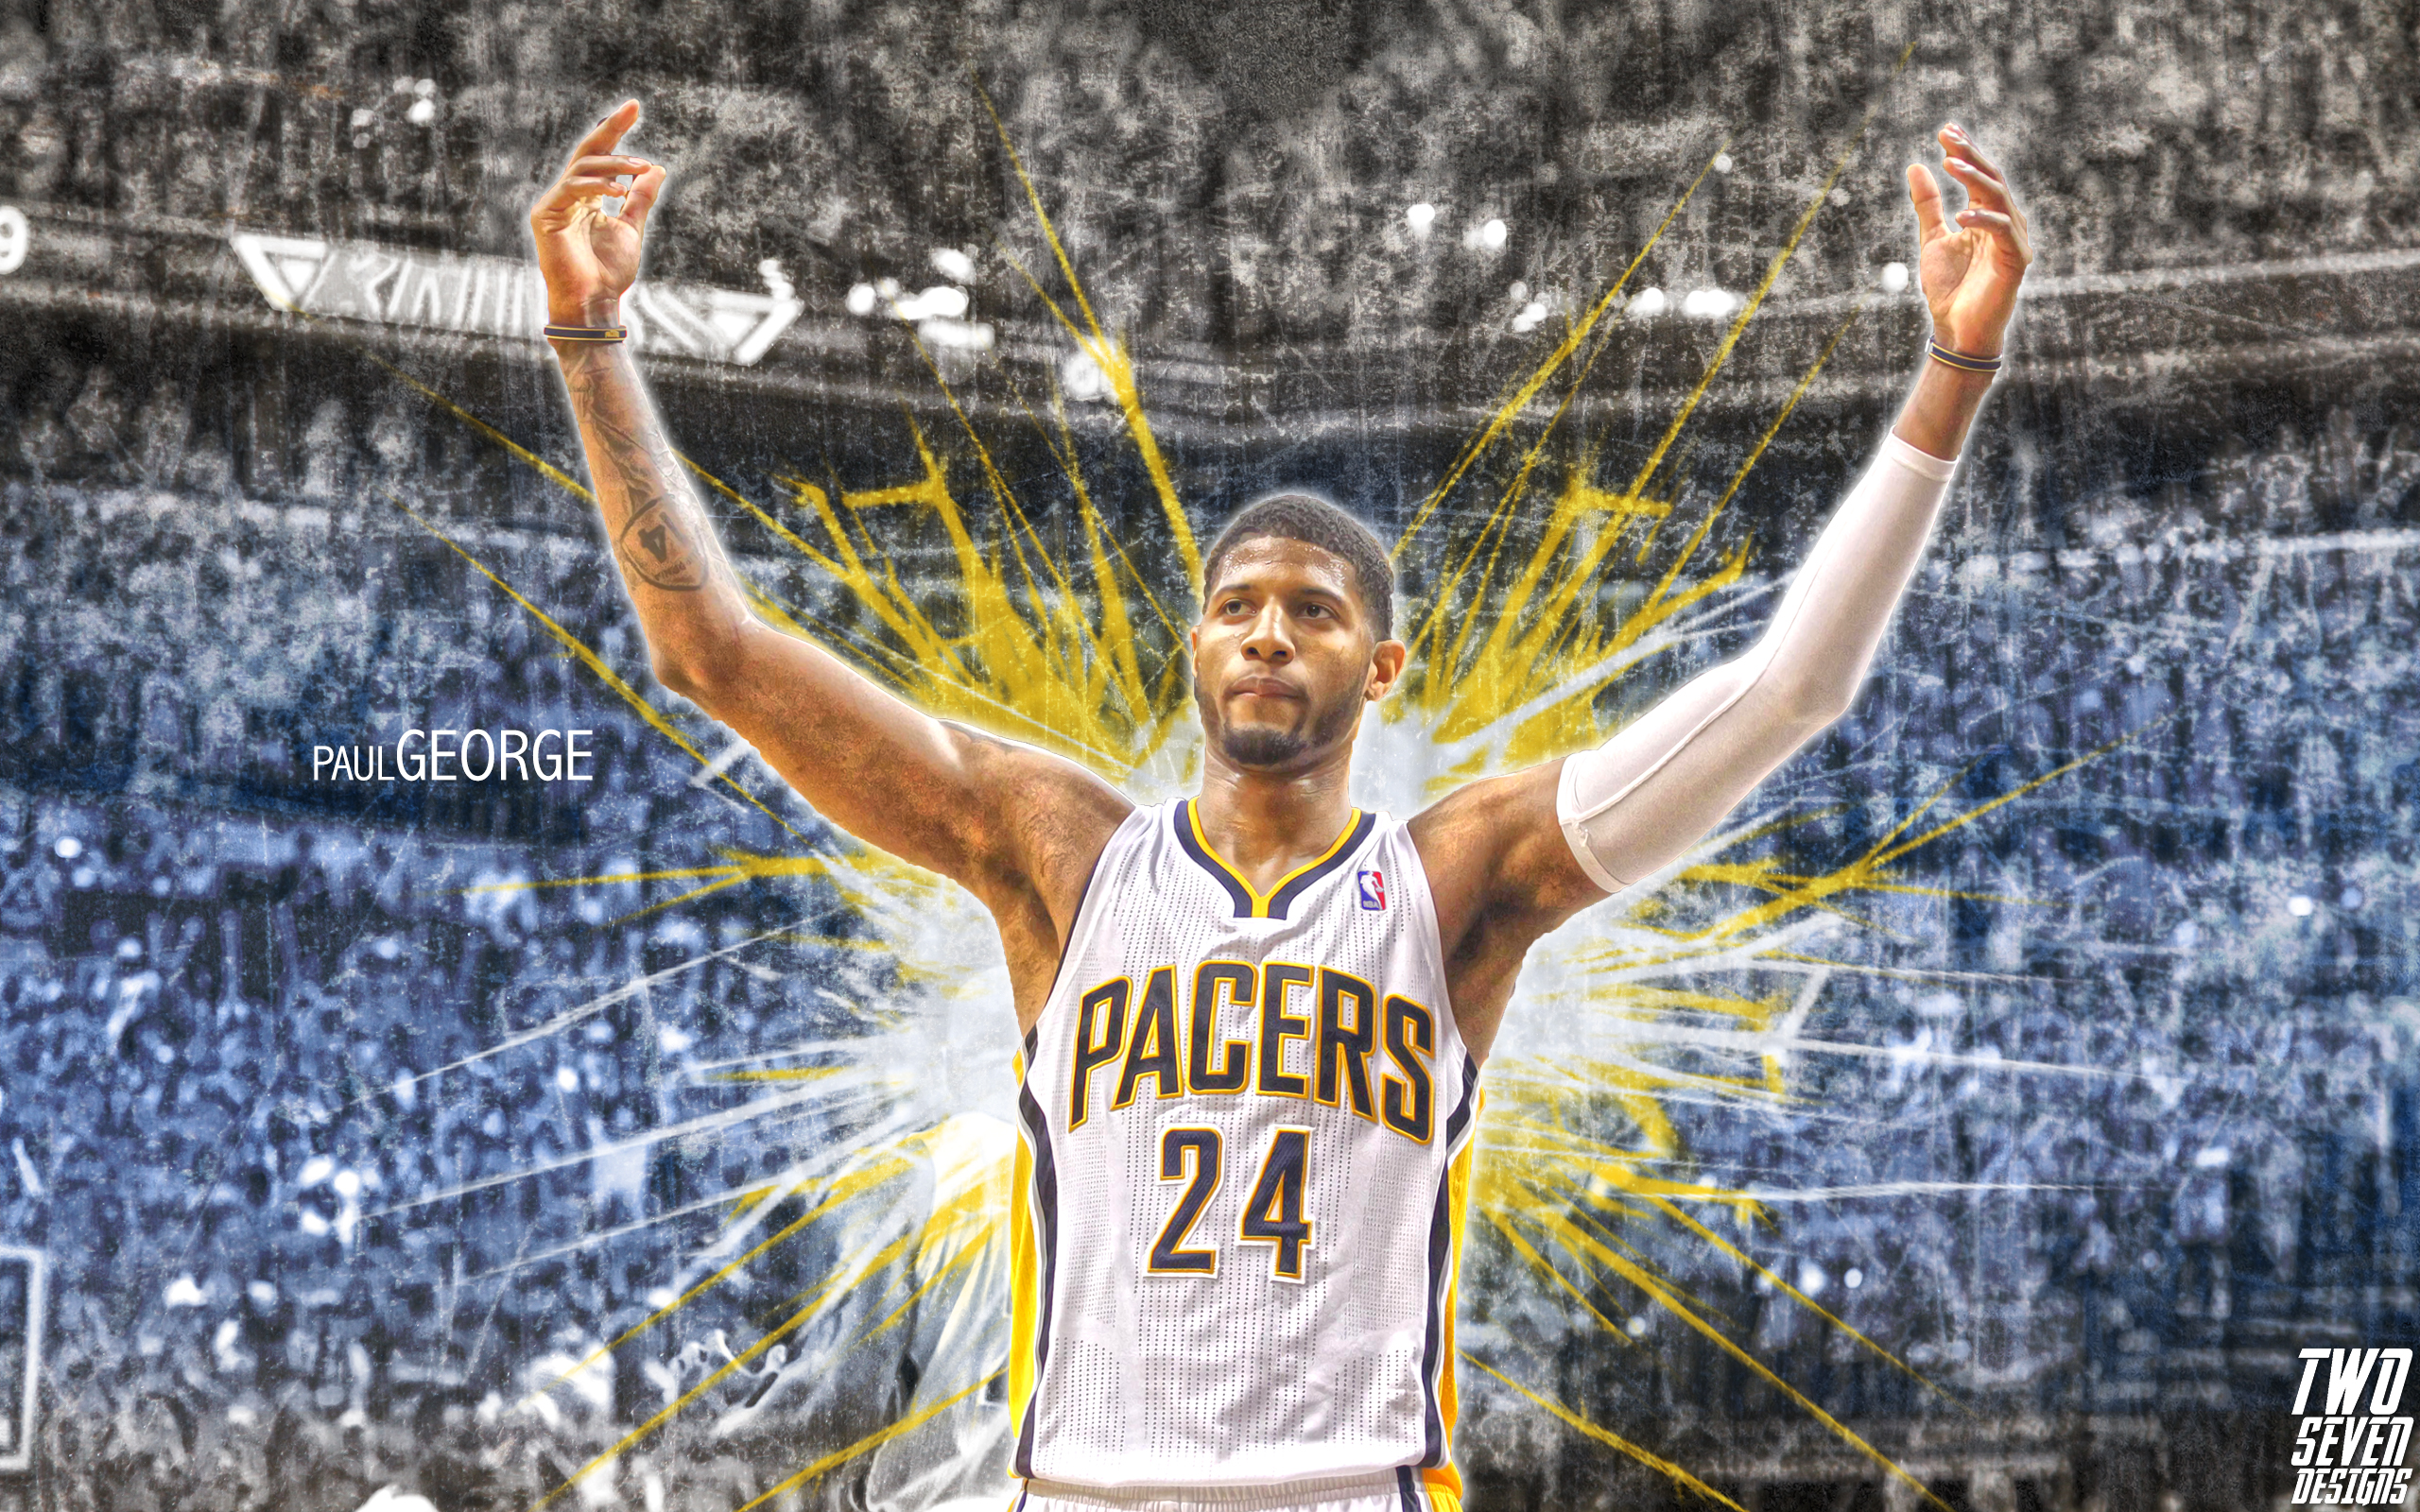 <b>Paul George Wallpaper</b> 13 - WallpaperSafari